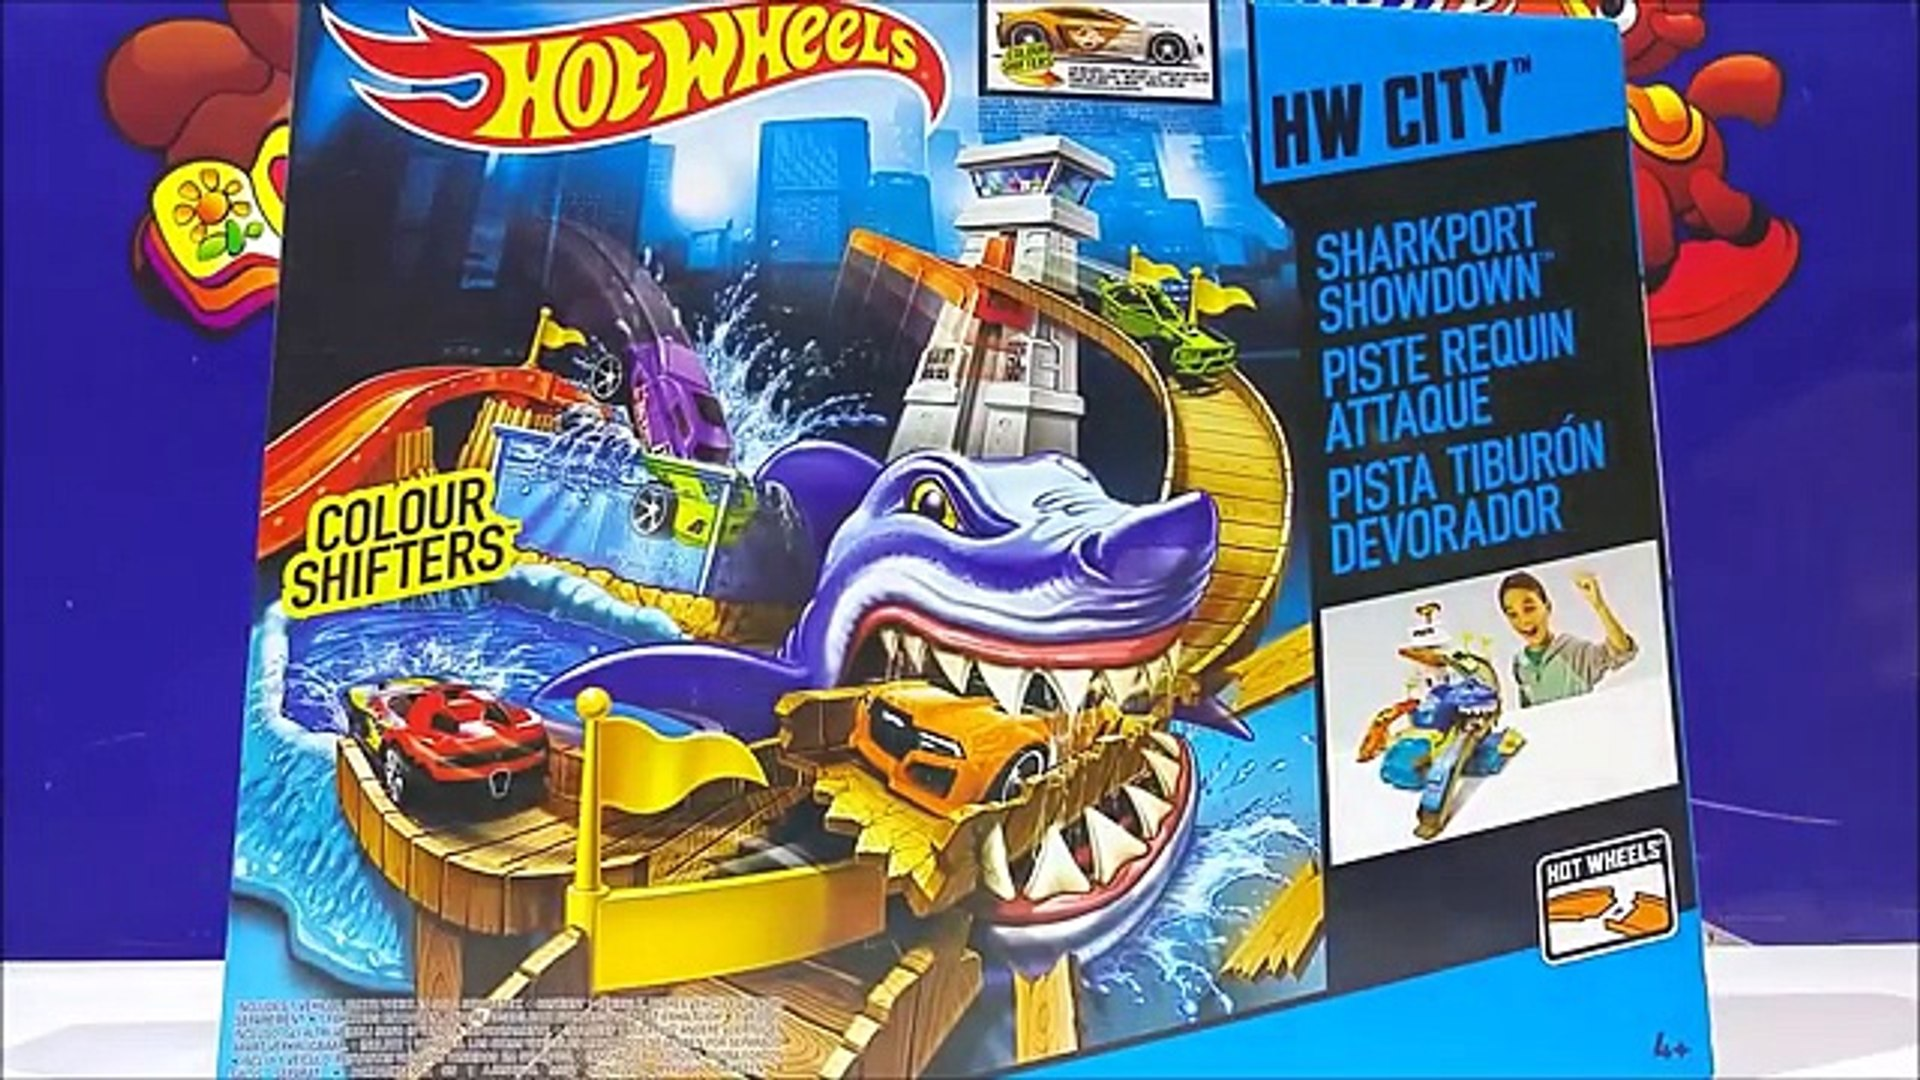 Hot Wheels Color Shifters Sharkport Showdown Trackset With New Hot Wheels Cars For Kids Worldwide